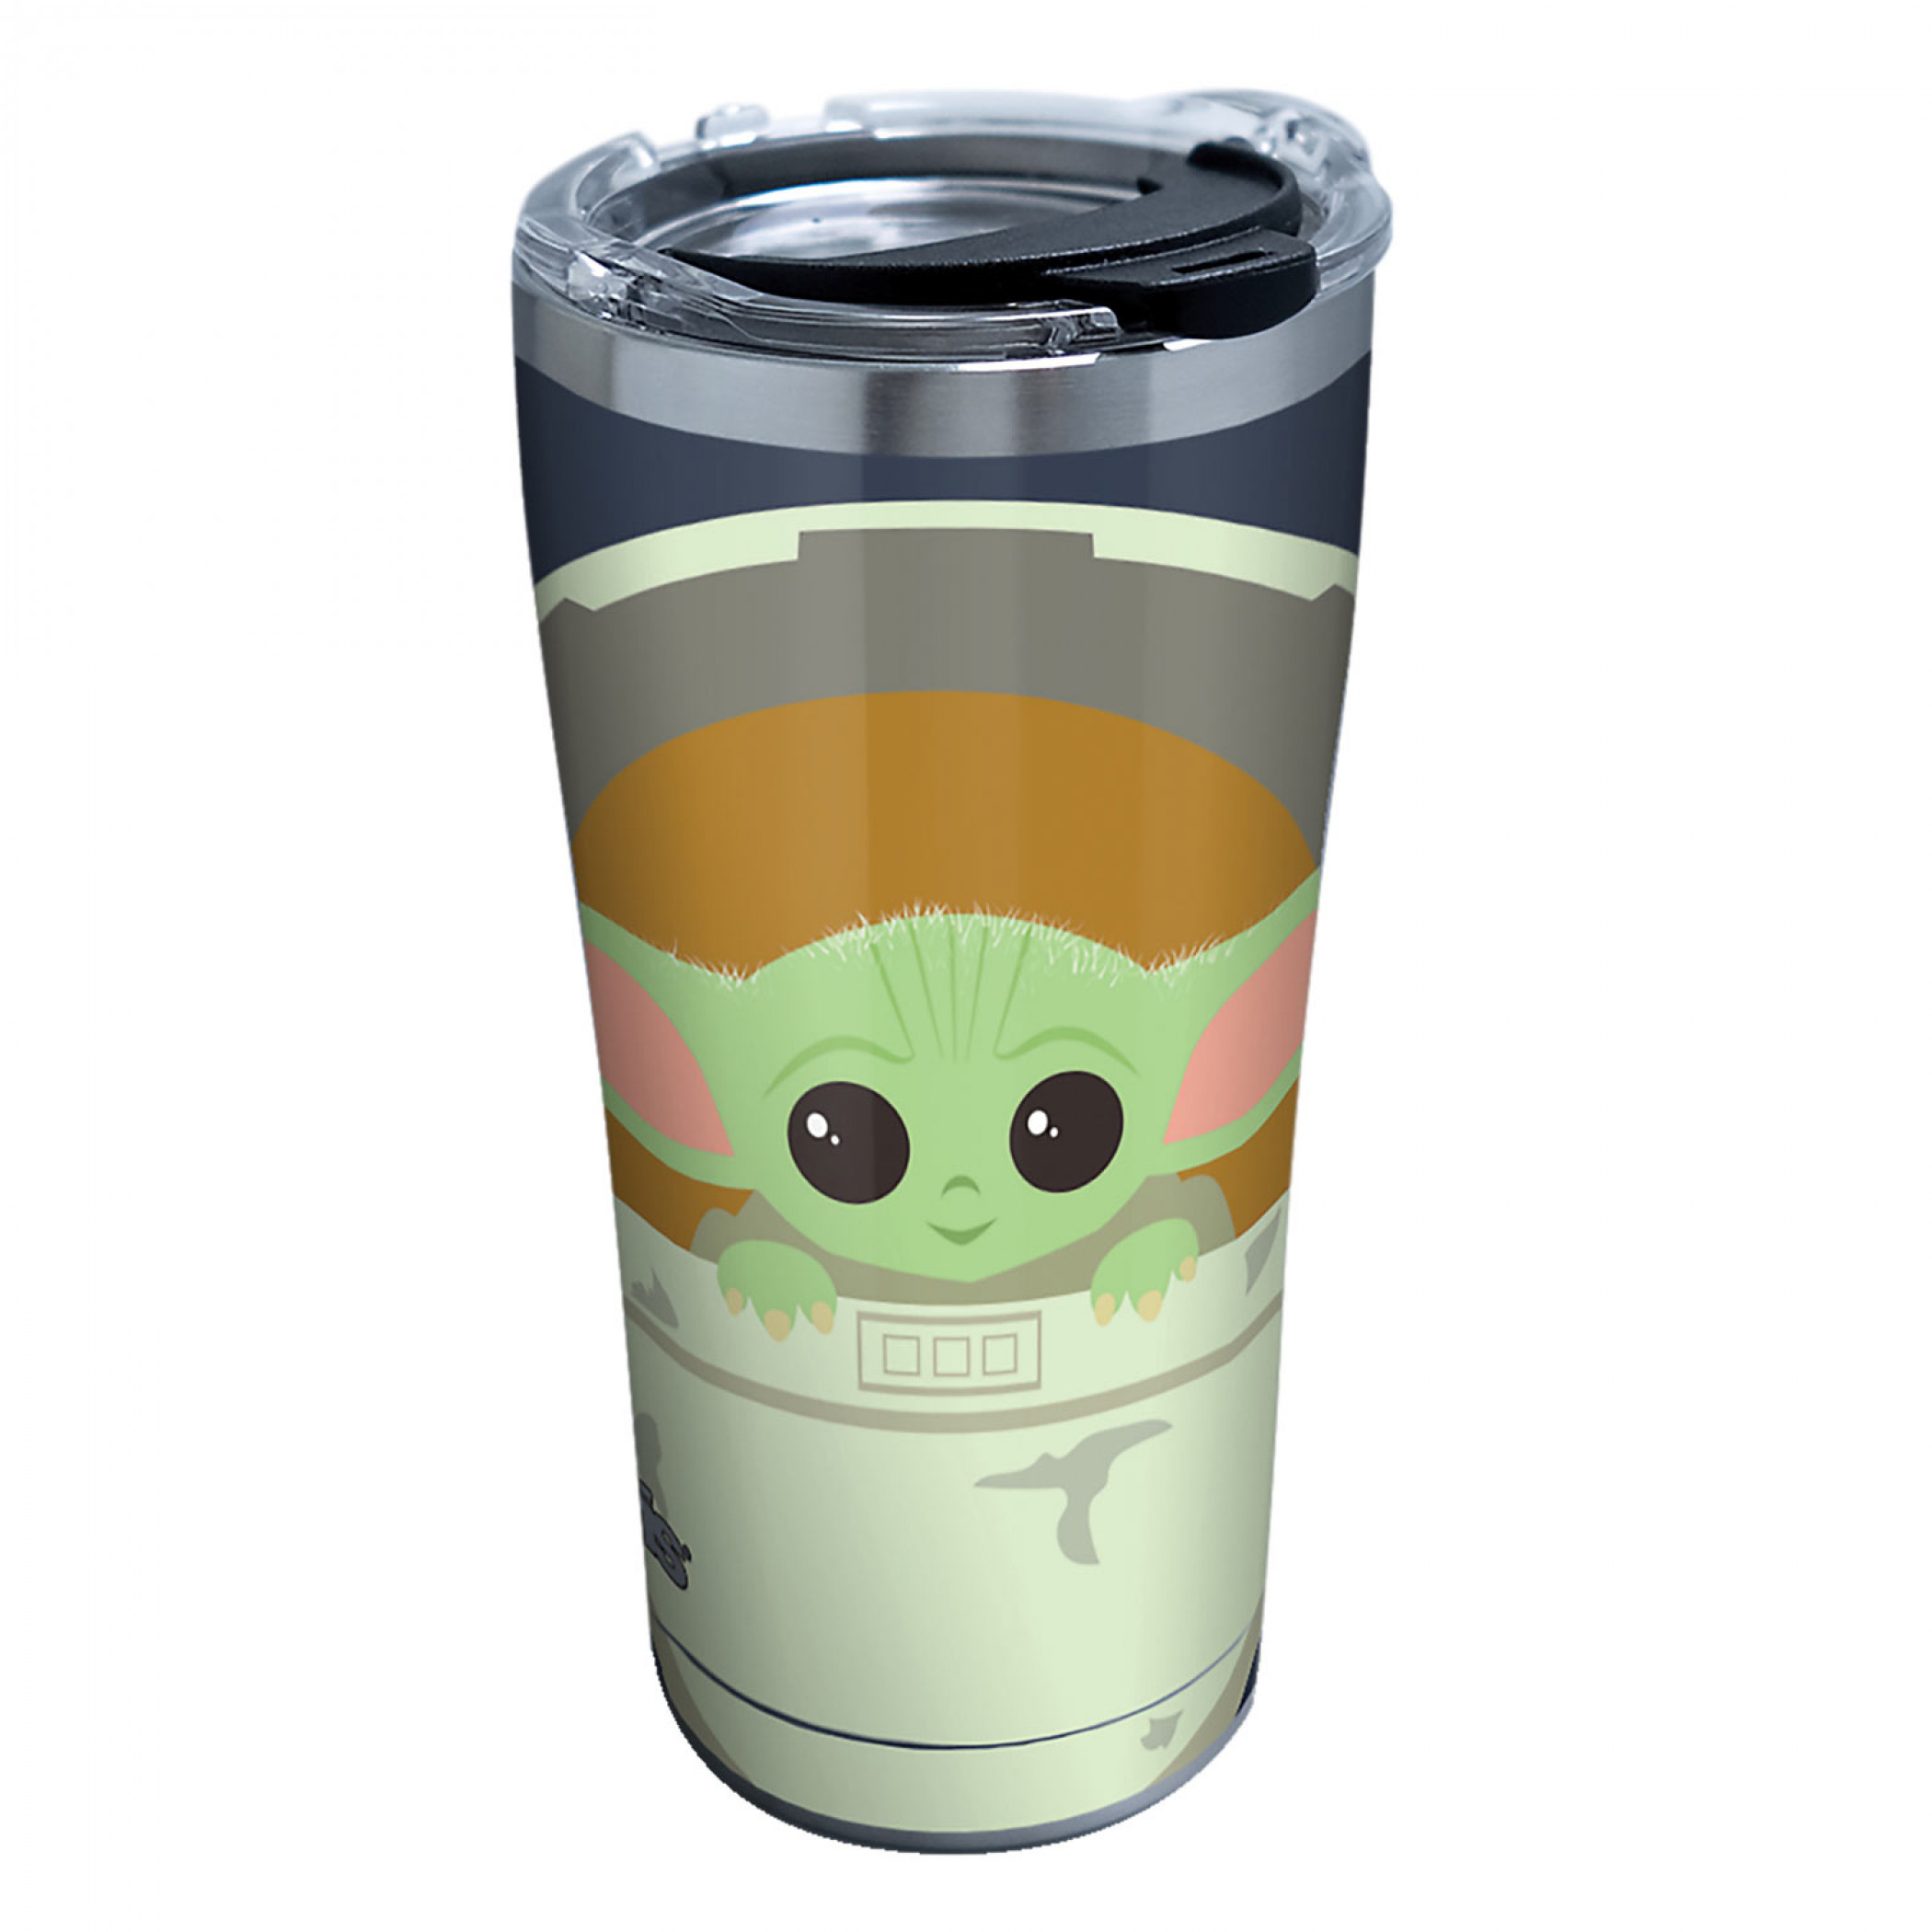 TM The Child Cartoon Stainless Steel Tumbler Mug